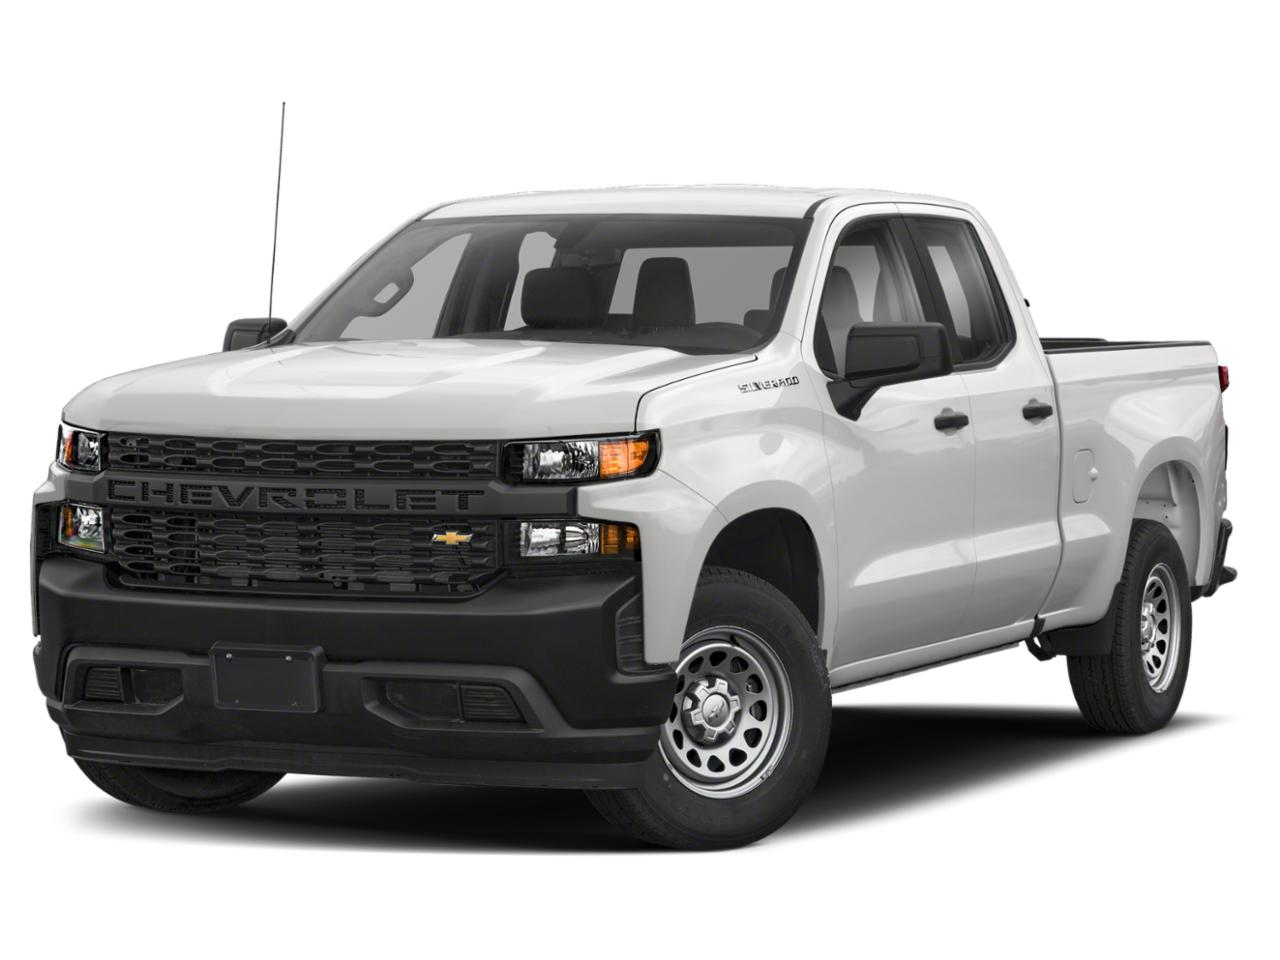 2021 Chevrolet Silverado 1500 Vehicle Photo in South Portland, ME 04106